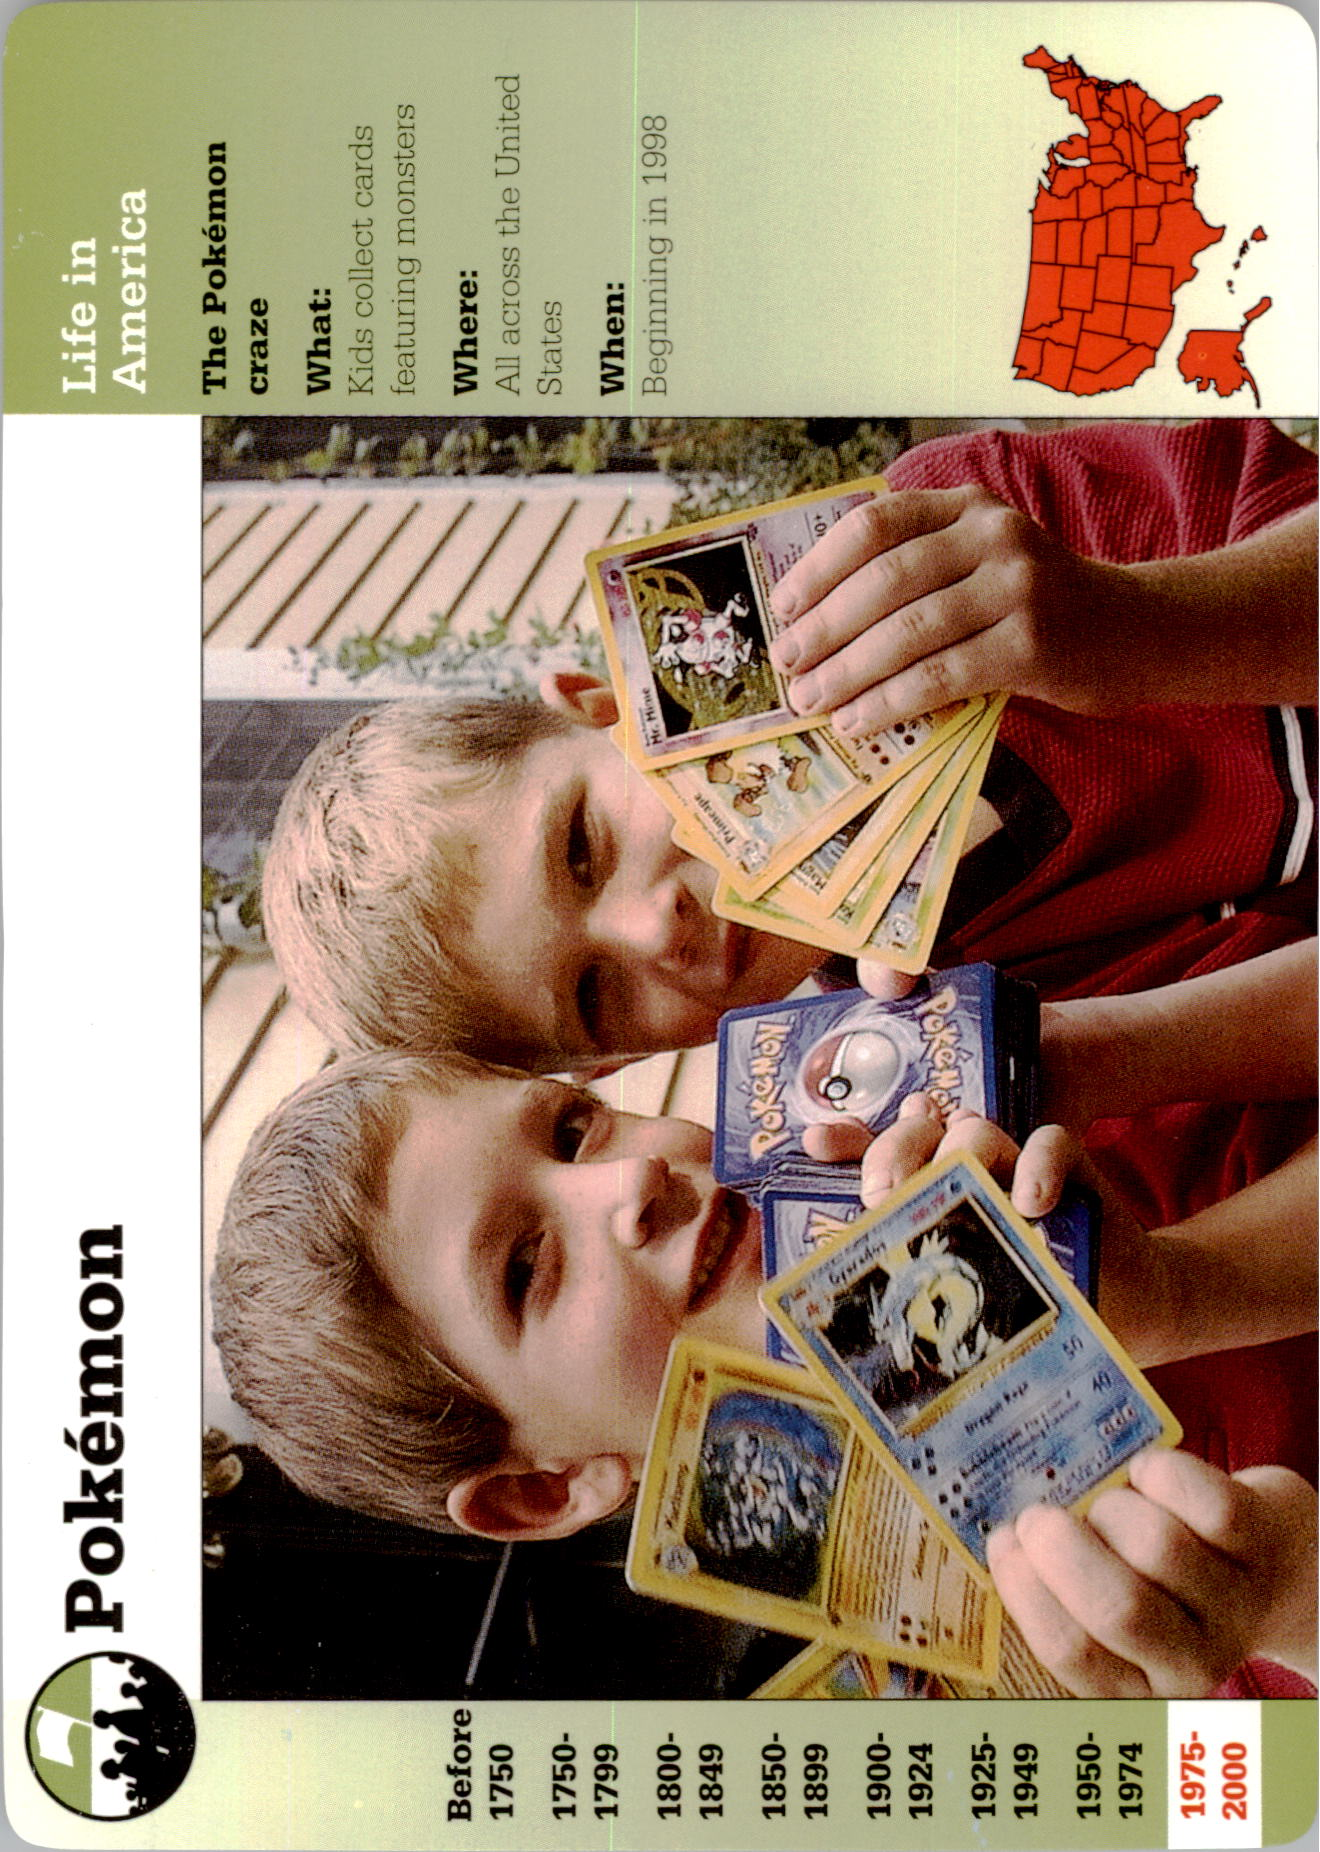 1994-01 Story of America #131-5 Pokemon